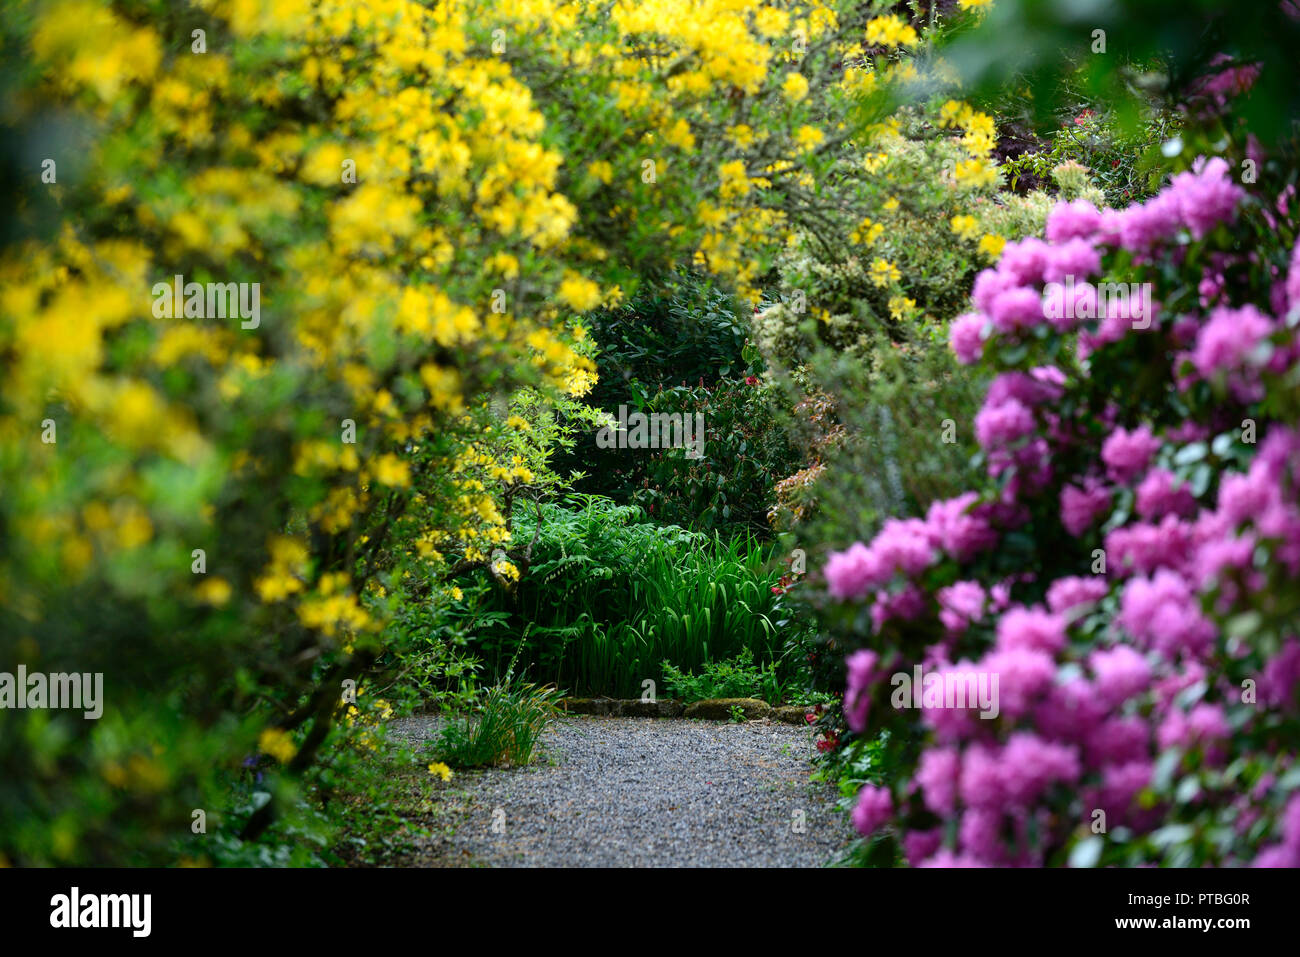 polygonatum biflorum,solomons seal,white,flowers,flowering, shade,shady,shaded,garden,rhododendron luteum,RM Floral - Stock Image